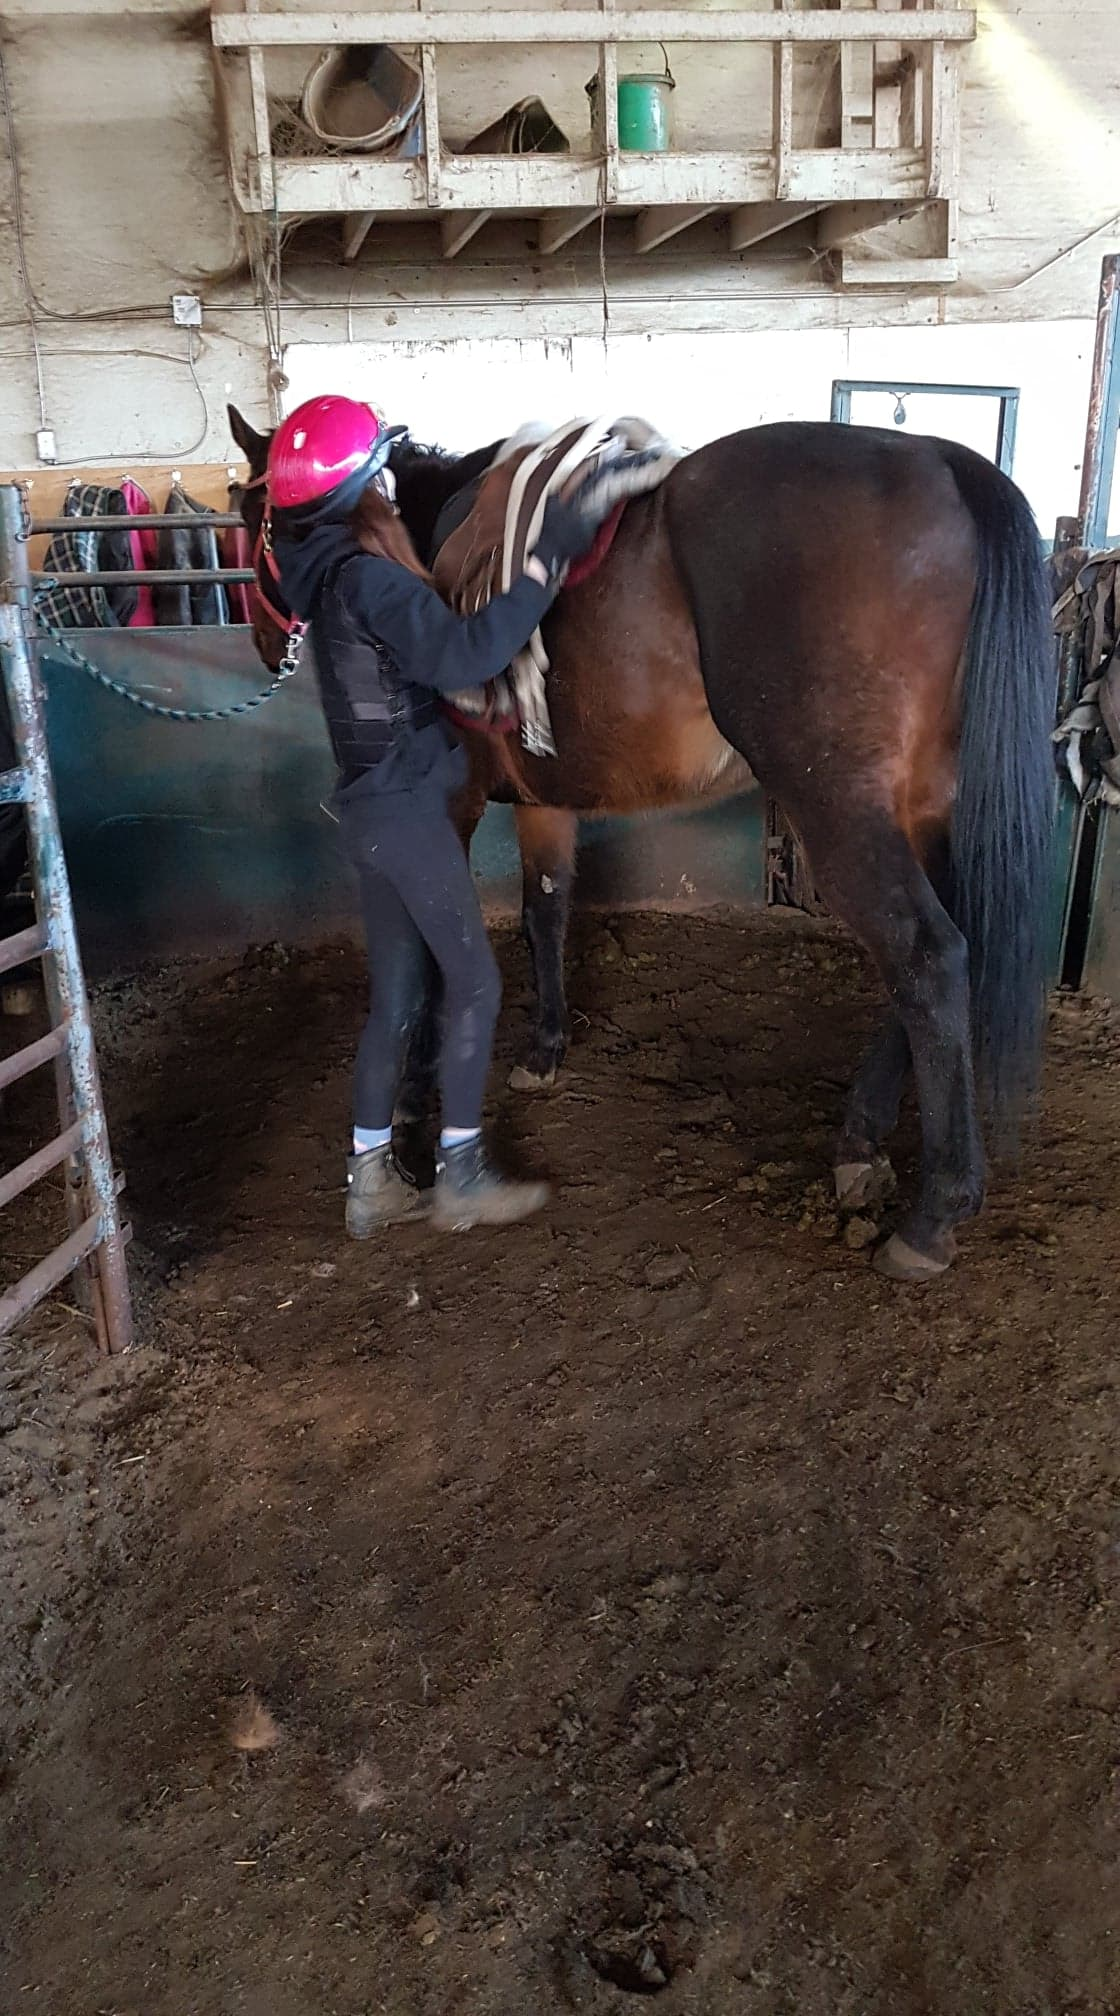 The kids in the Junior Jockeys of Flying Cross Ranch program learn all aspects of being a jockey and taking care of horses (photo courtesy of Roy Sturgeon).